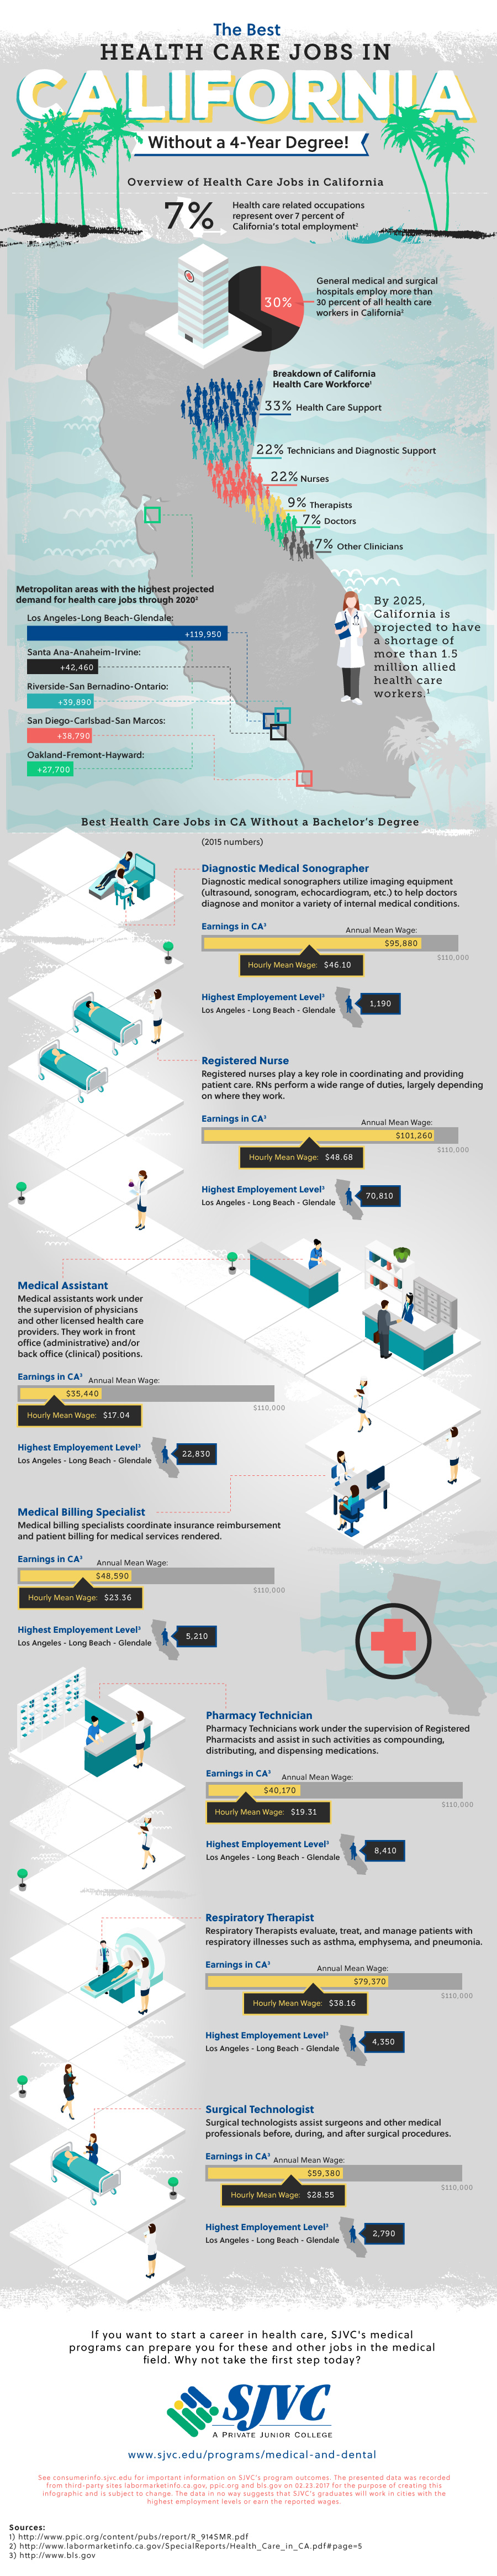 Healthcare Jobs In California That Do Not Demand A 4-Year Degree - Infographic